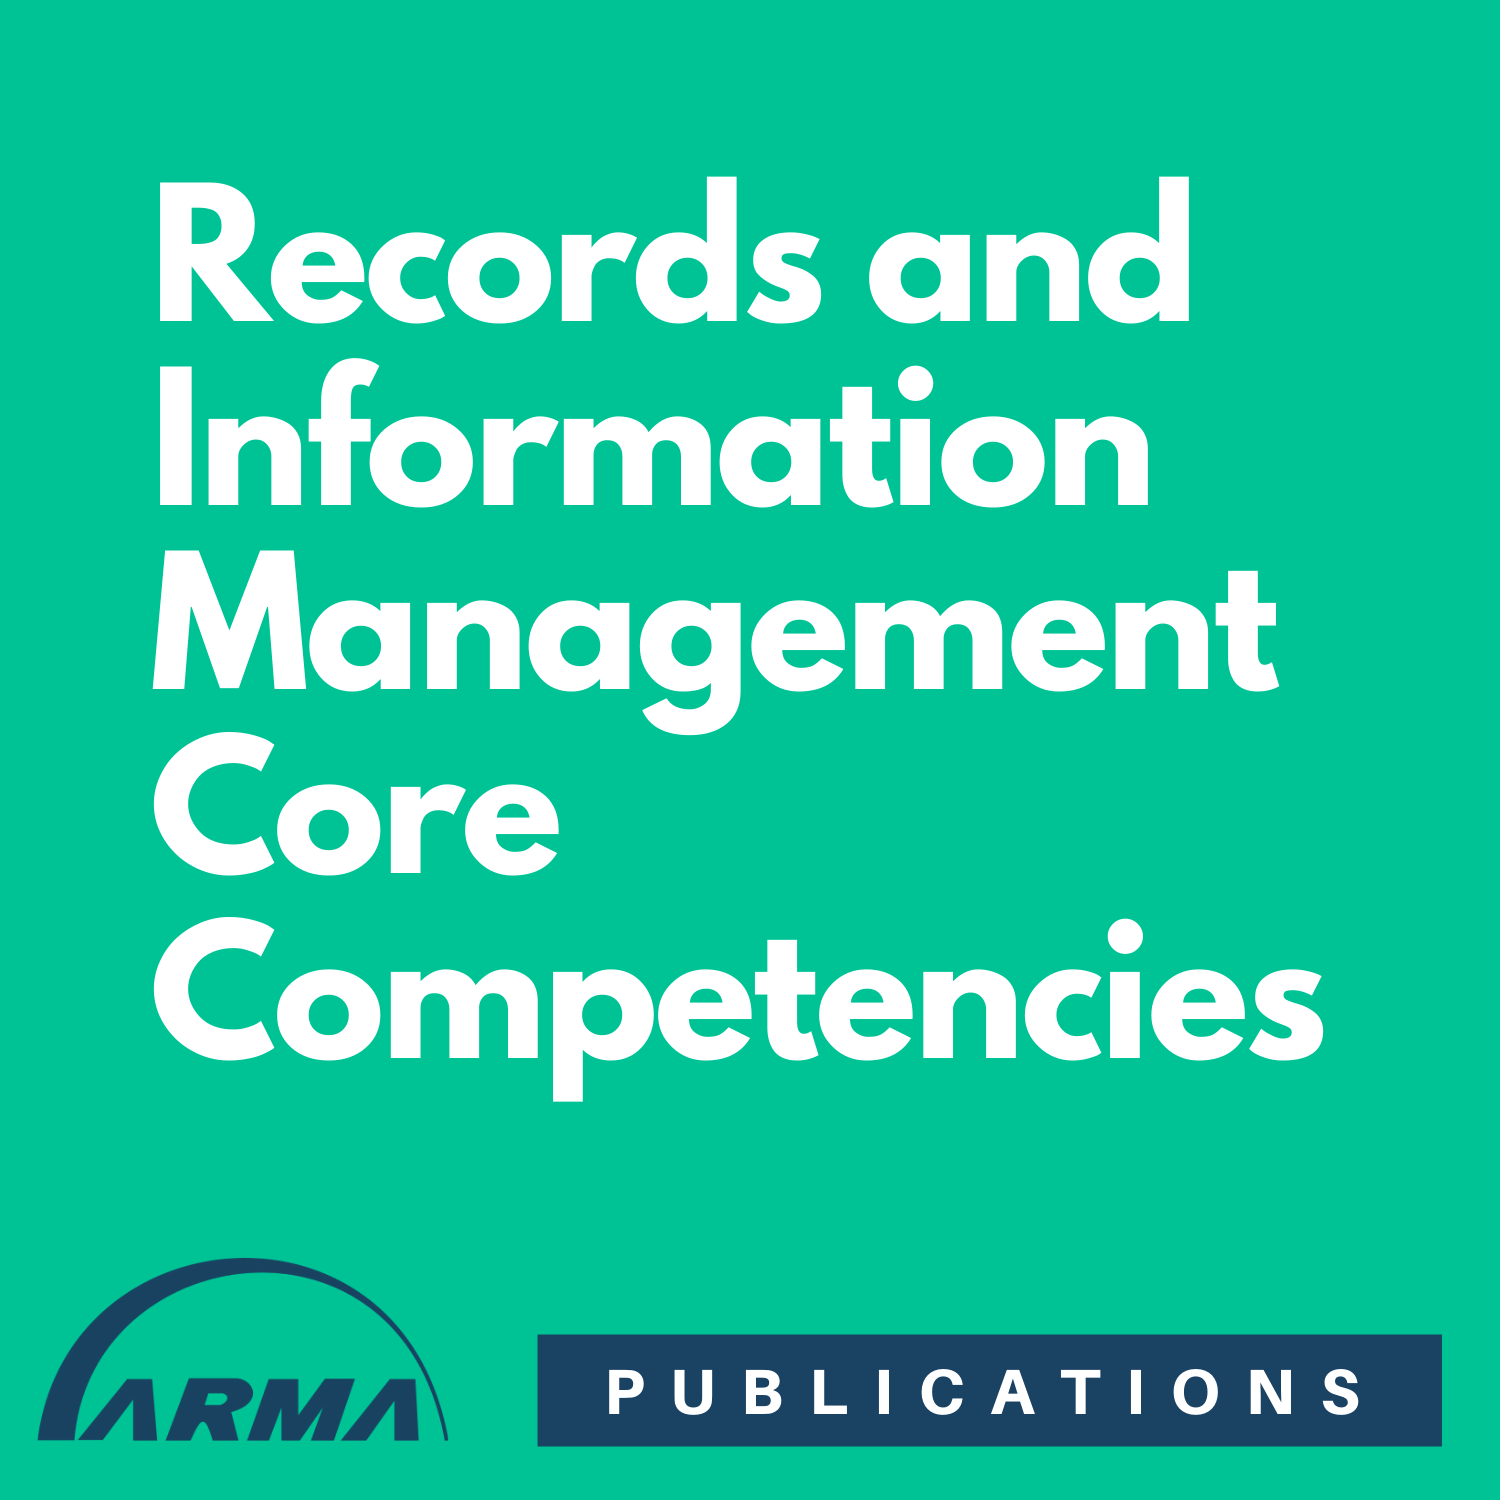 Records and Information Management Core Competencies